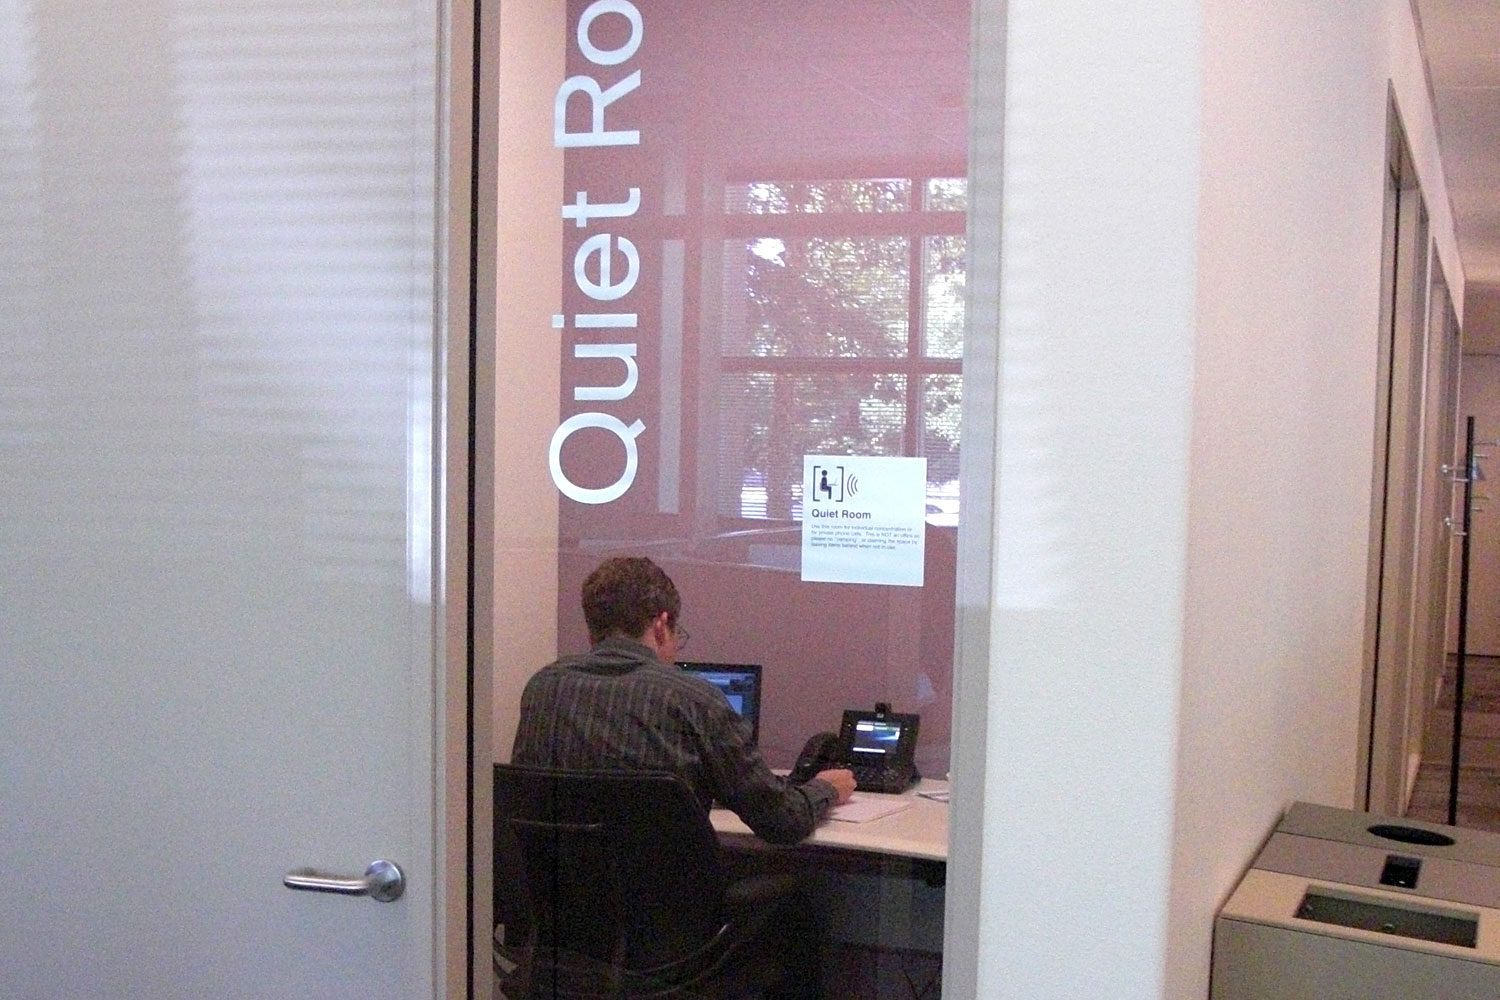 Quiet Room Cisco Connected Workplace